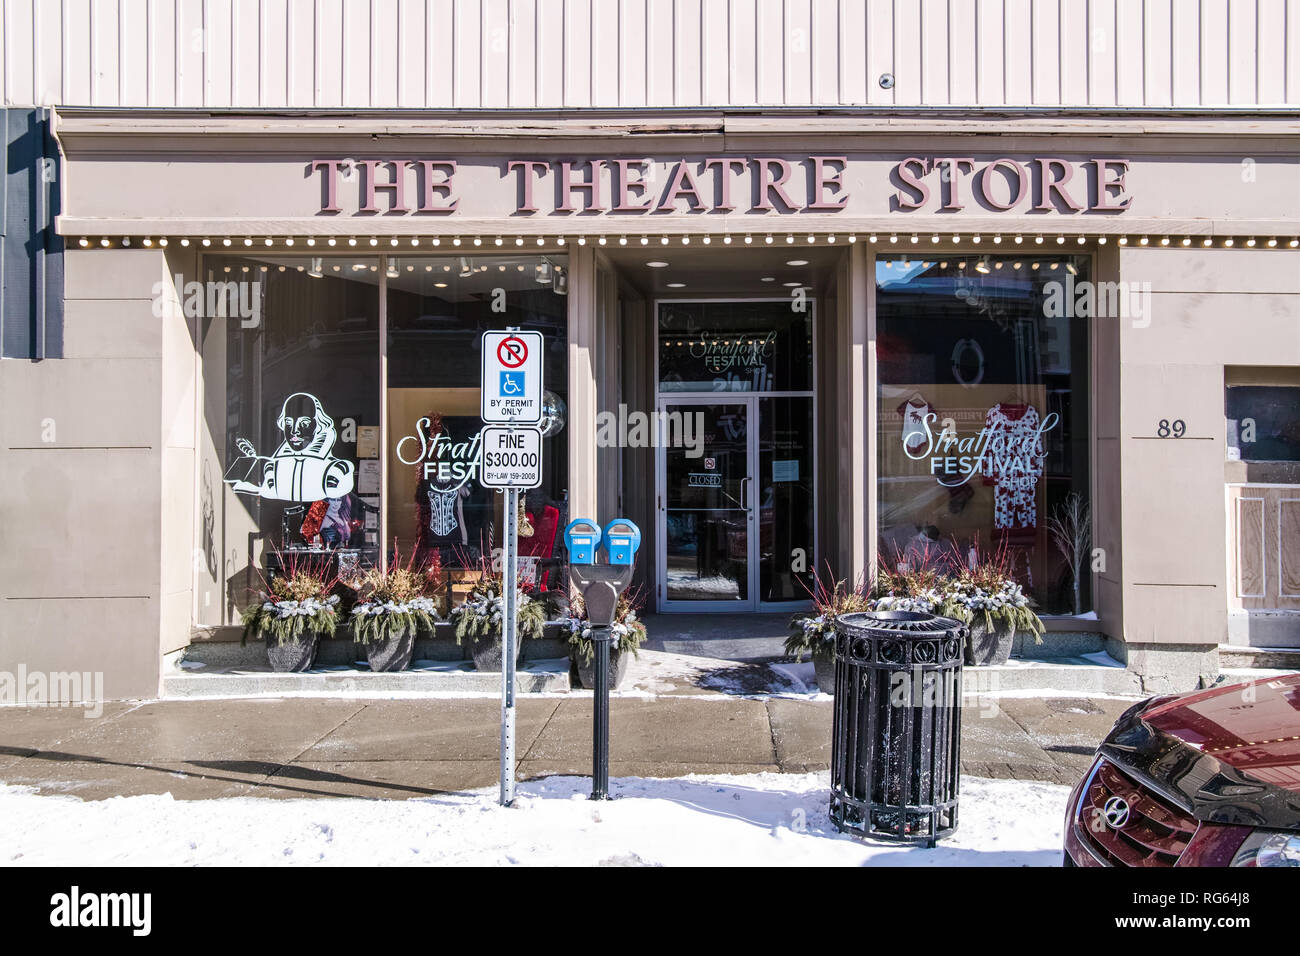 A view of The Theatre Store front in Stratford, Ontario, Canada. - Stock Image